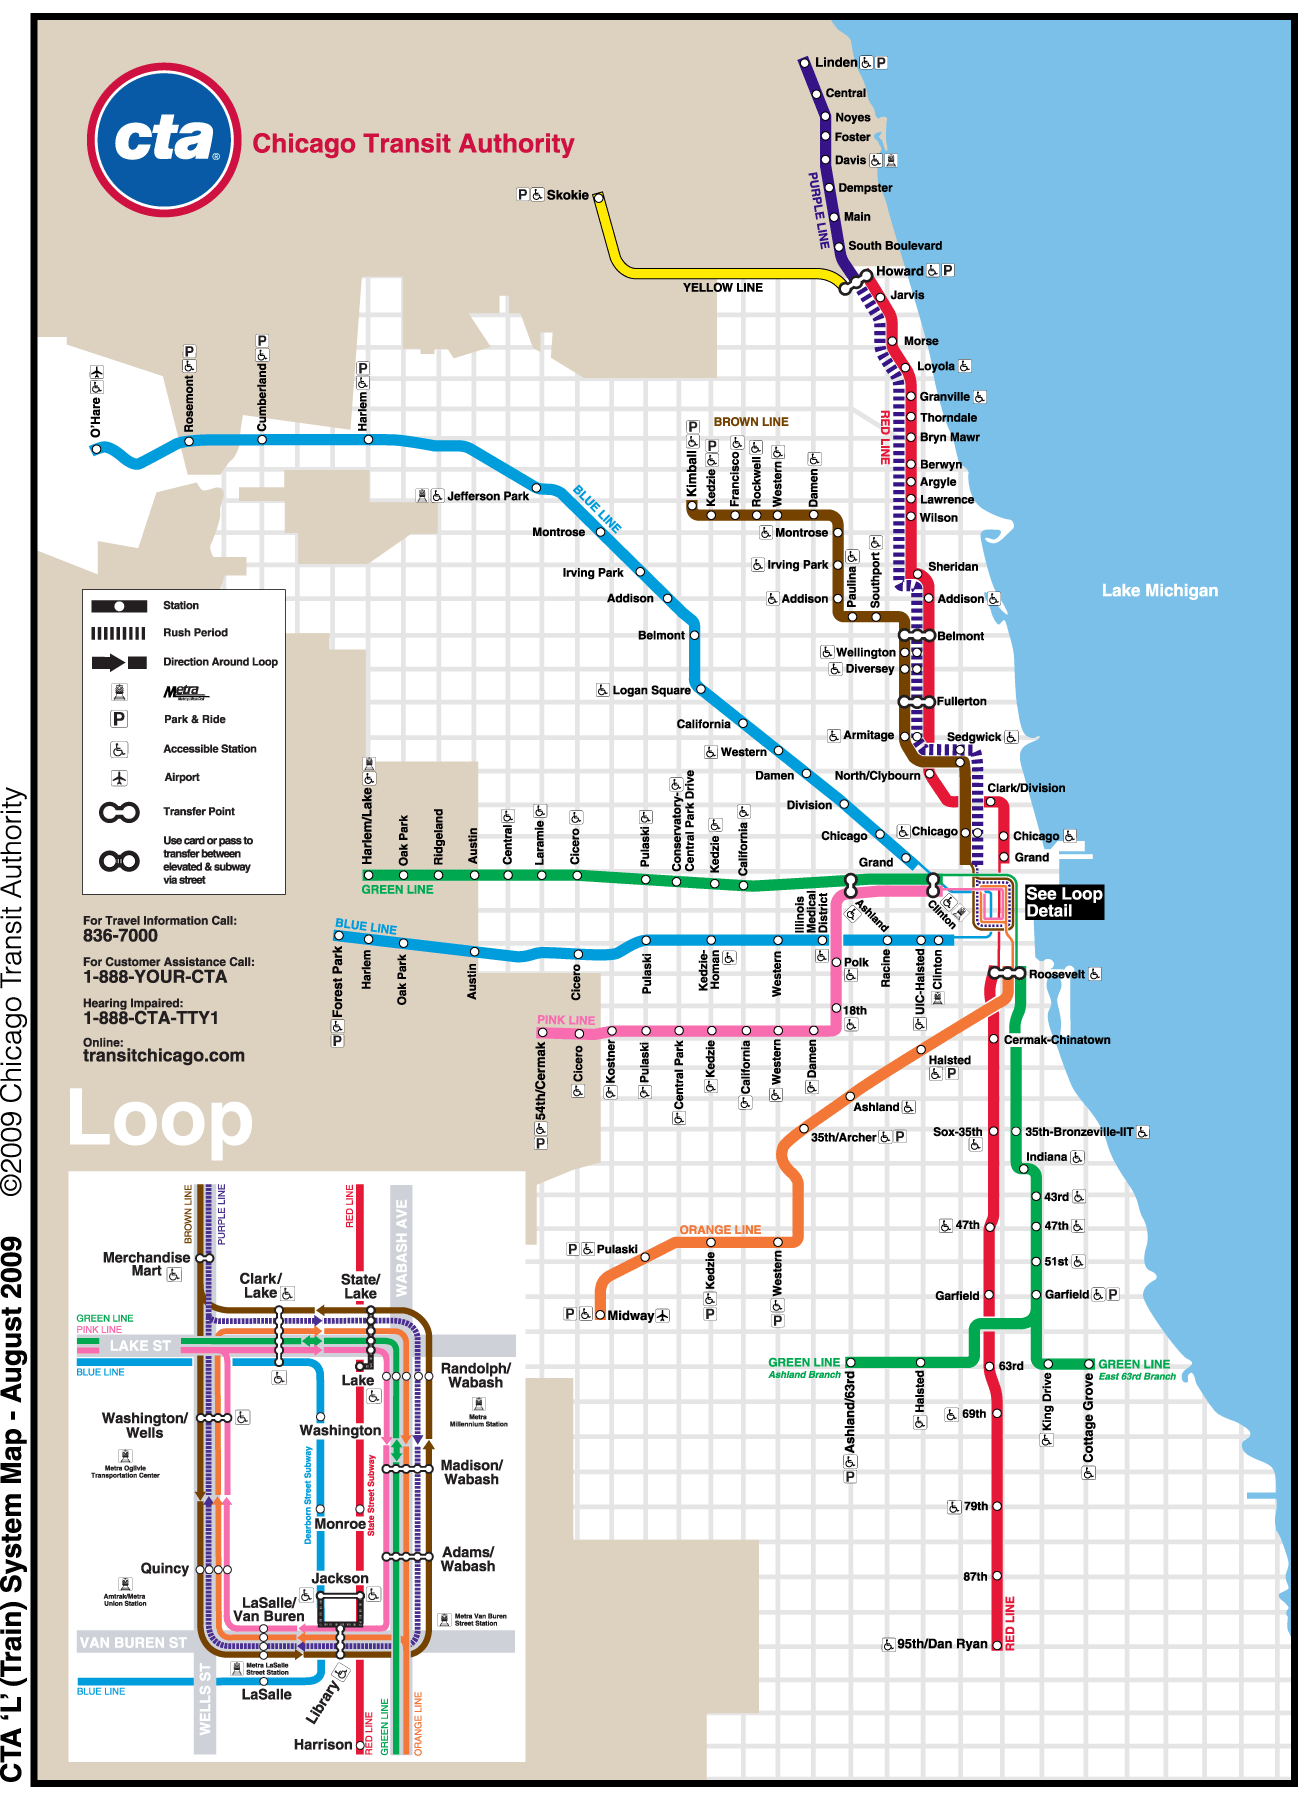 Metro Chicago Map Chicago | Travel in 2019 | Chicago map, Train map, Map